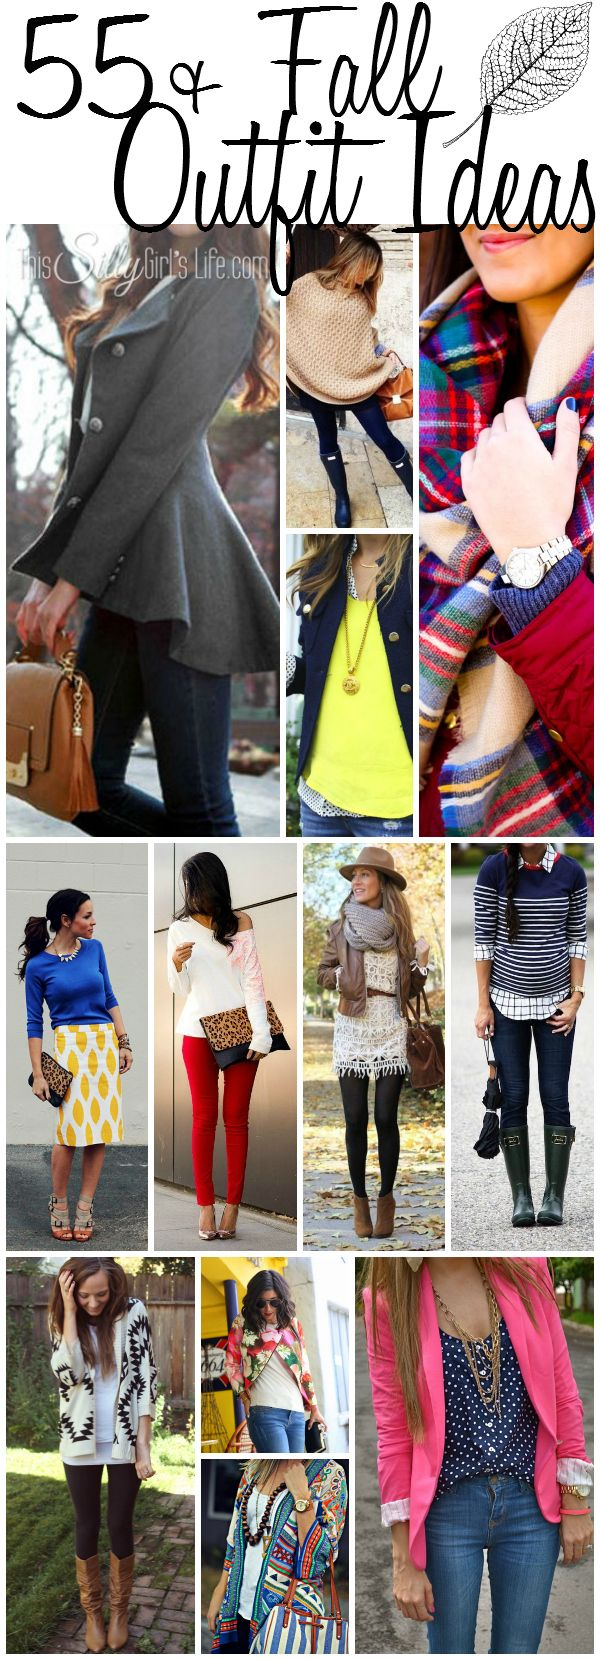 55++Fall+Outfit+Ideas,+super+cute+clothing+inspiration+for+fall!